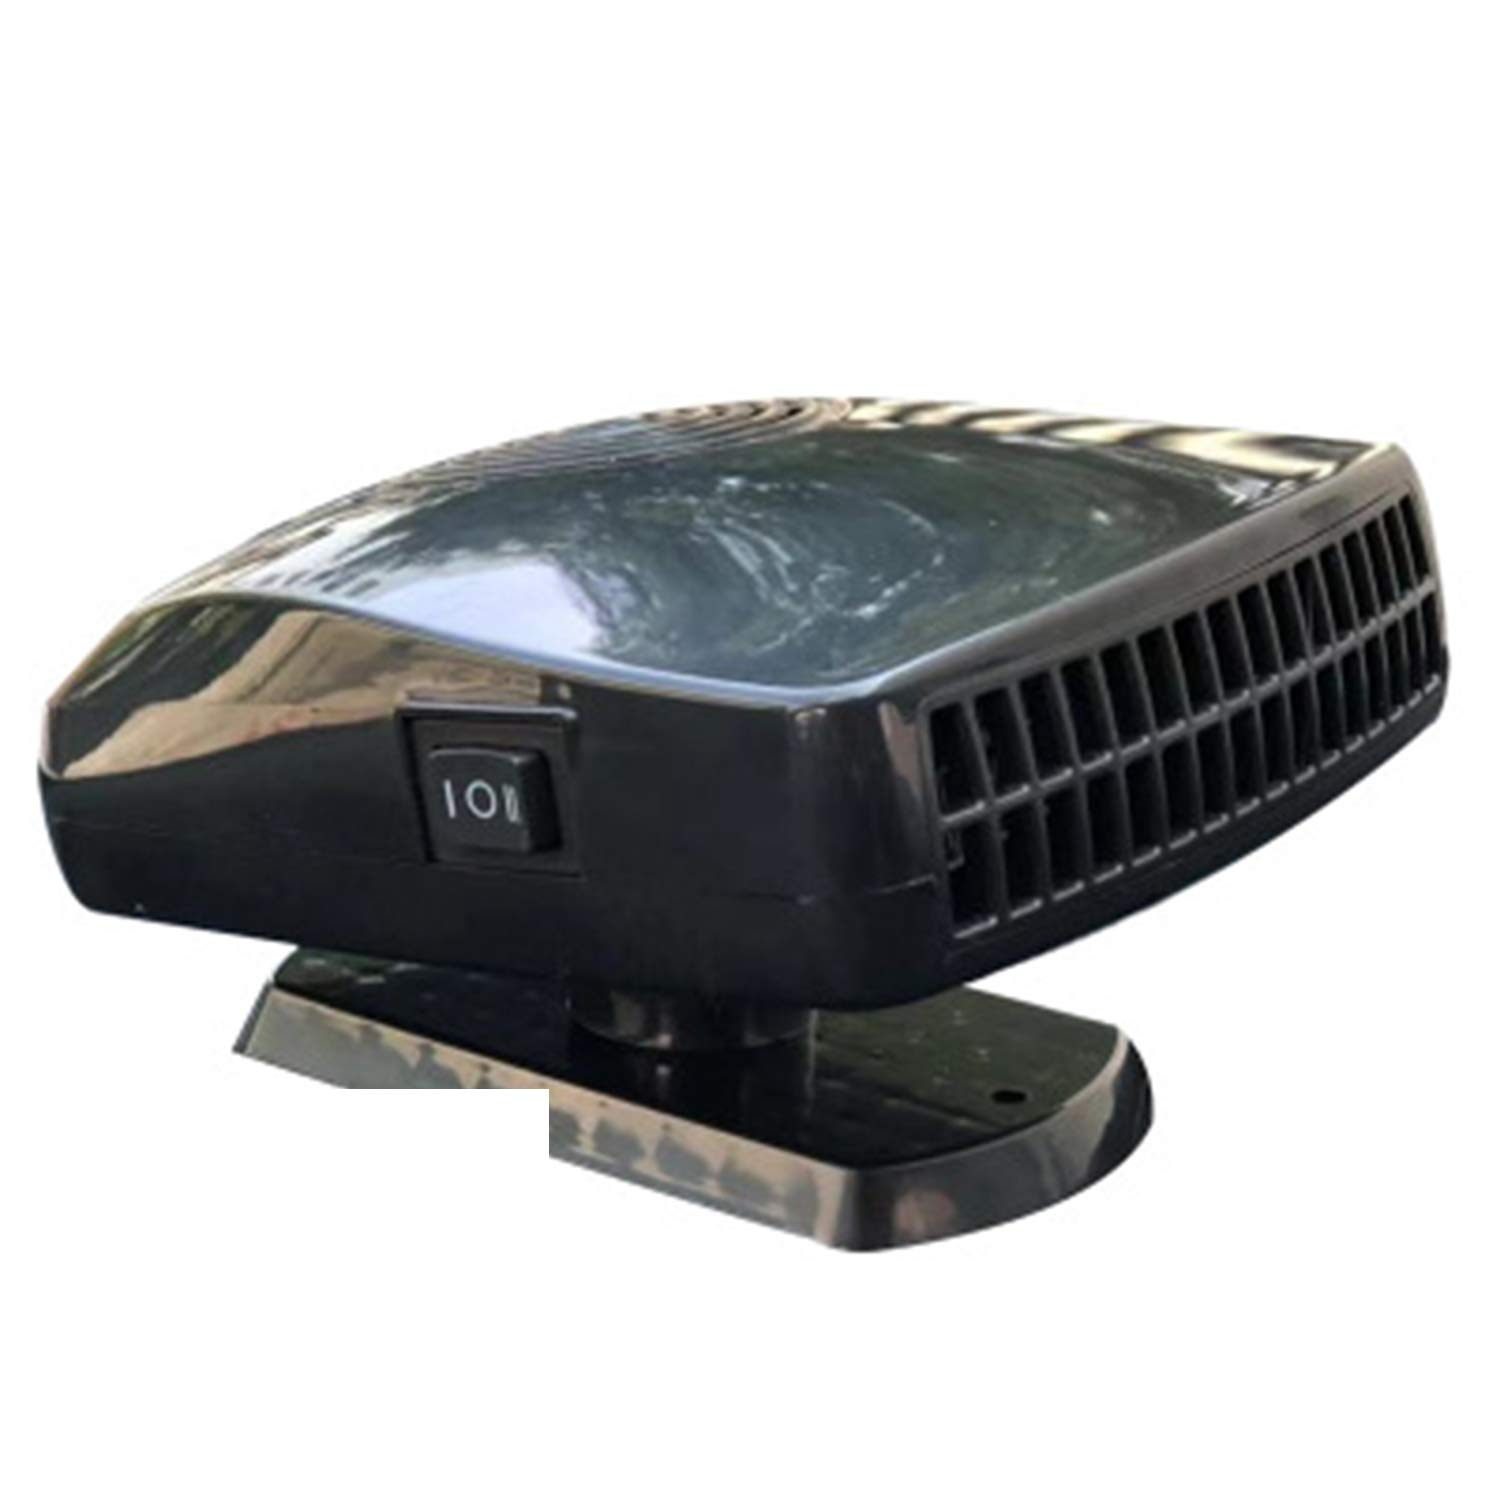 Portable Car Heater 12V Car Heater 24V Car Heater Defrosting Electric Heater Heater Defrost Except Power 150W